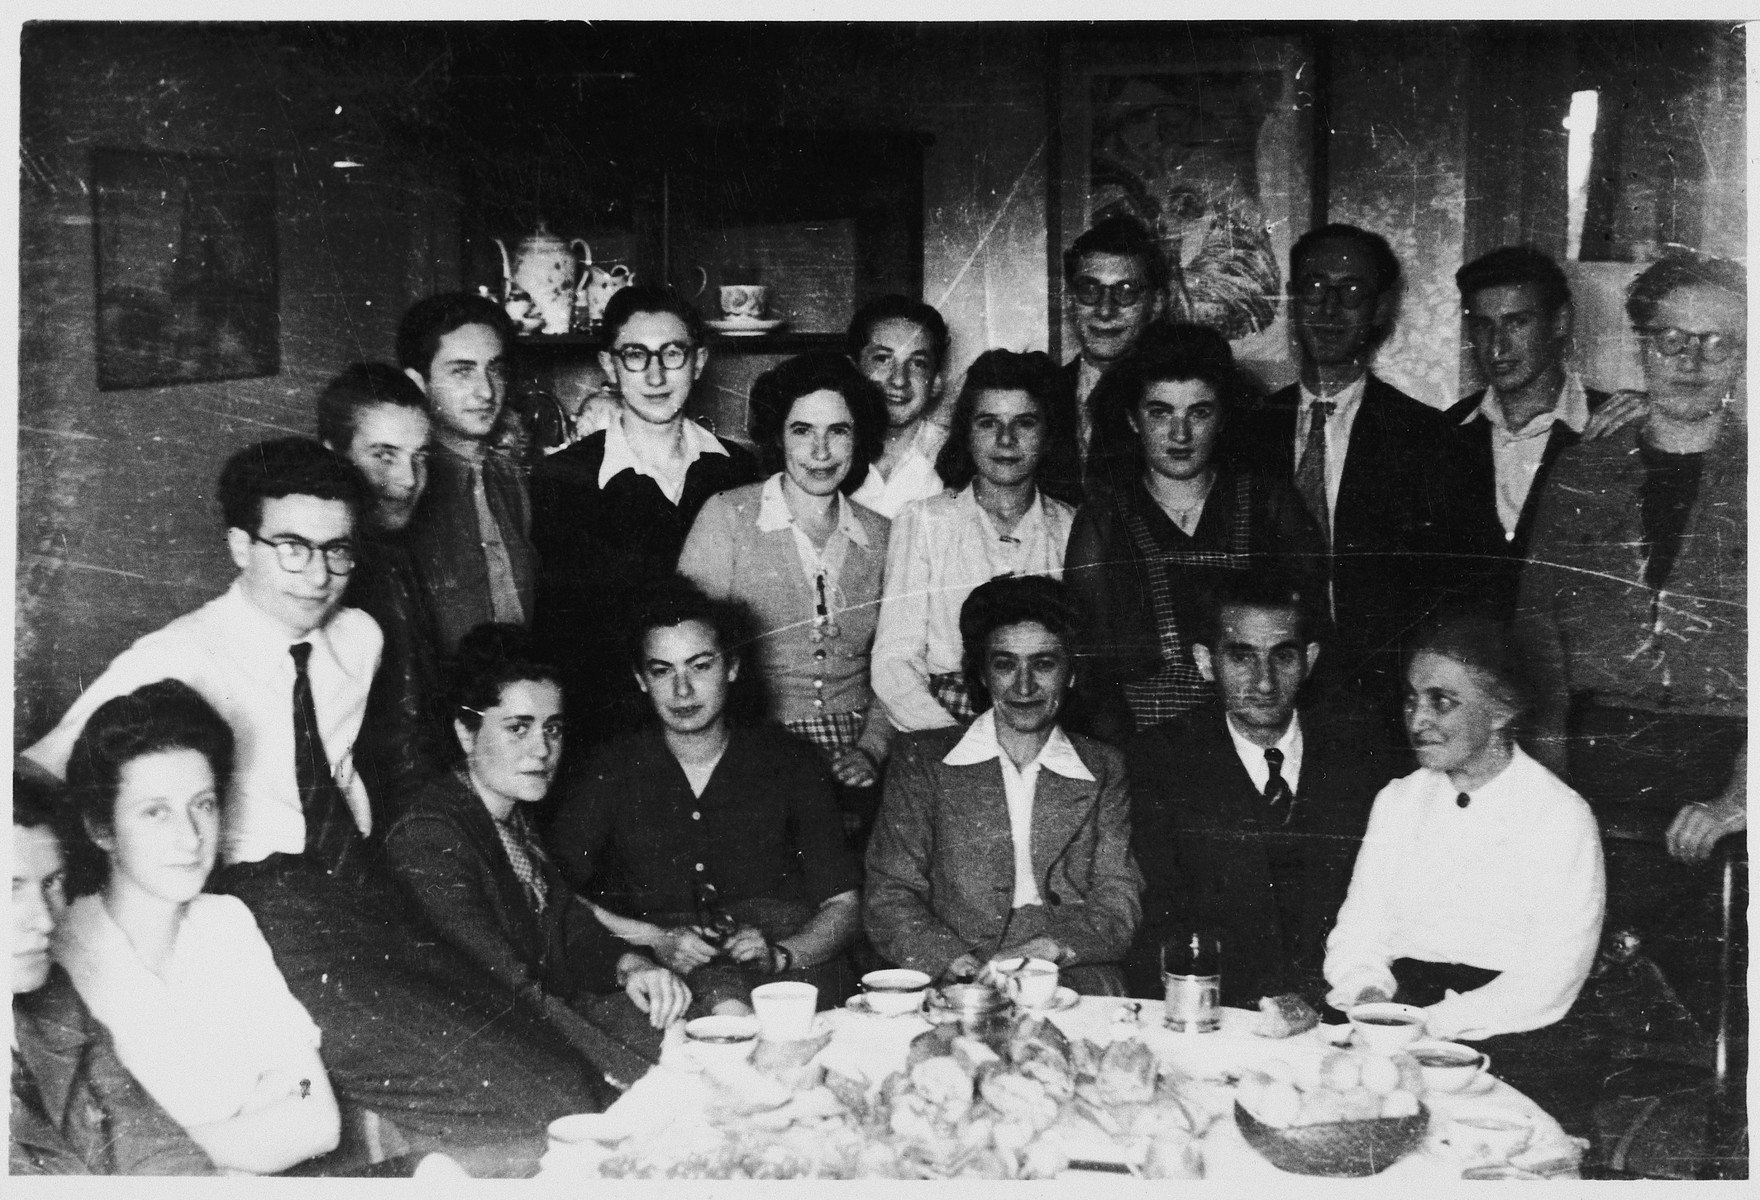 OSE staff and former students attend a party in Paris to celebrate Mr. Koenig's safe return from concentration camp.  Mr. Koenig had been the leather-making instructor in OSE's Chabannes children's home.  Among those pictured are Lida Jablonsky, Fee Beyth, Mrs. Koenig, Mr. Koenig, Mrs. Reich and Wolf Blumenreich (who also returned from concentration camp.)